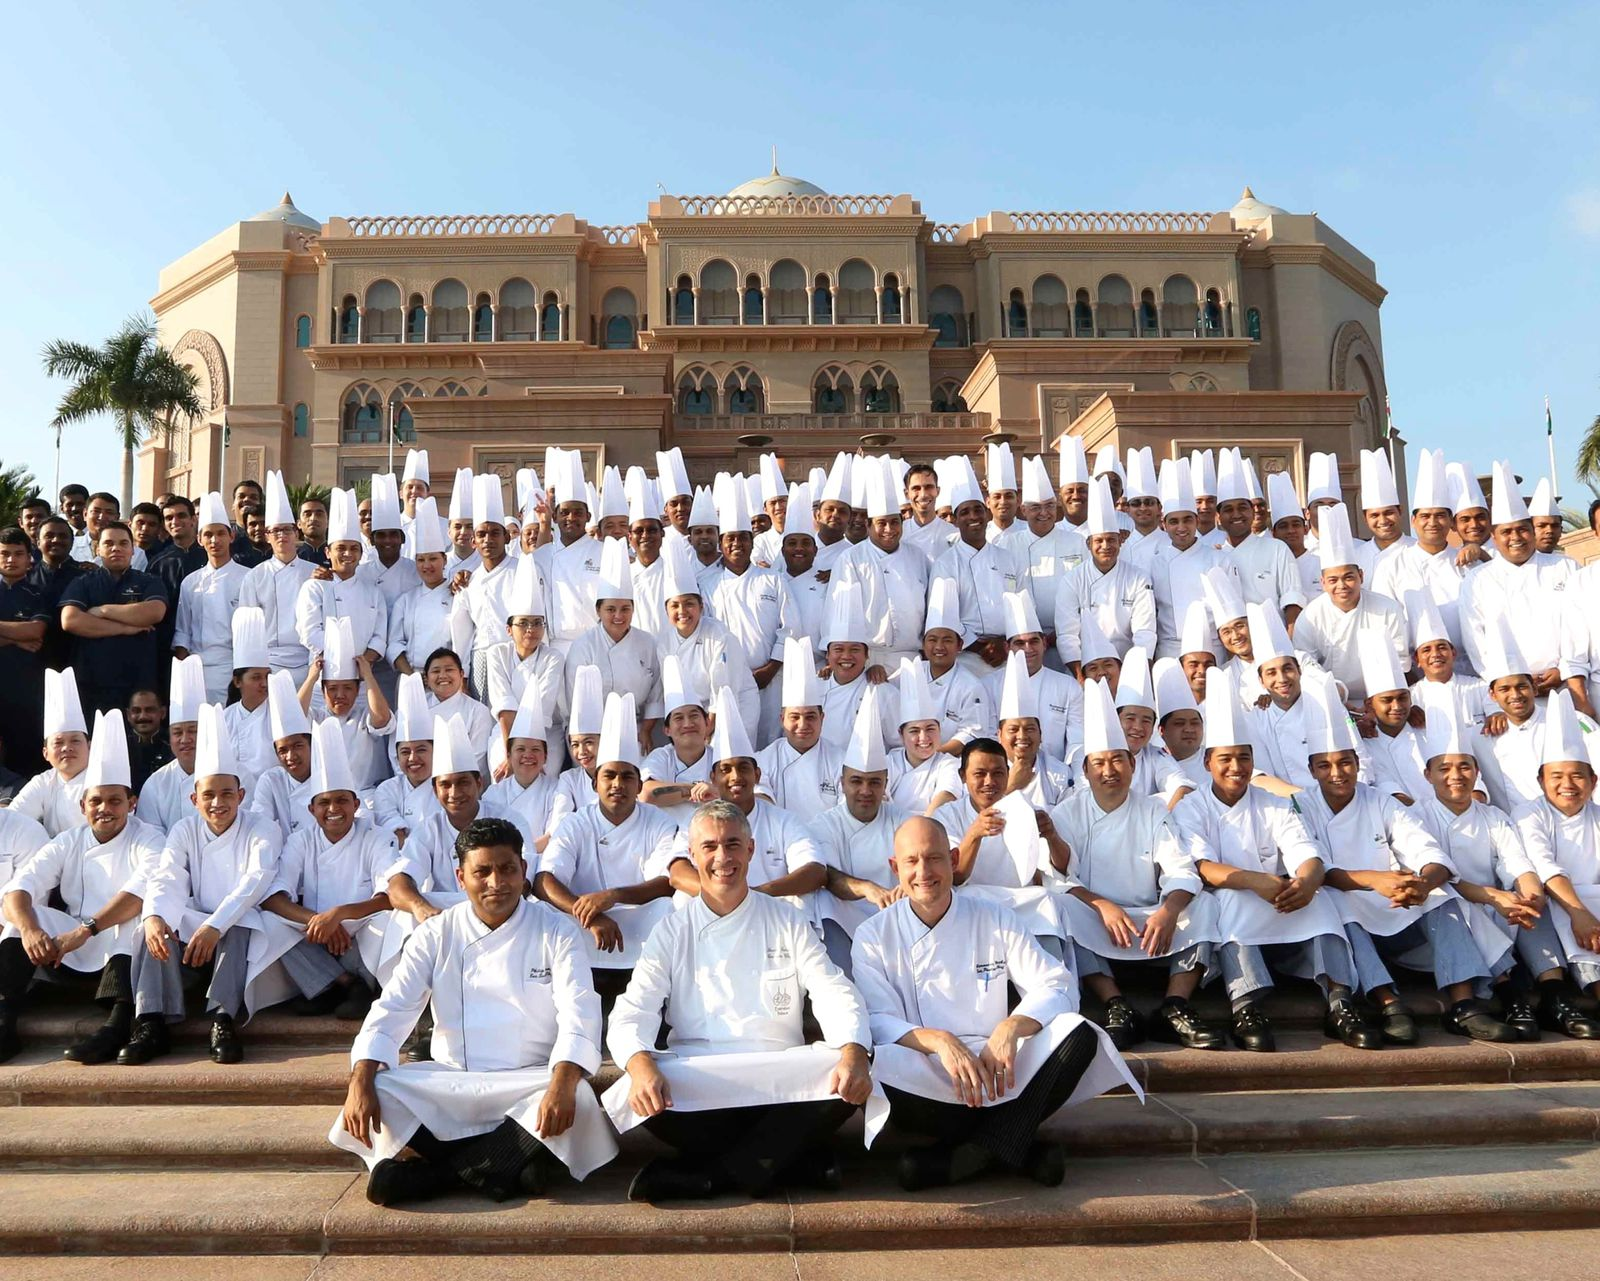 The Culinary Emirates Palace Team 2013